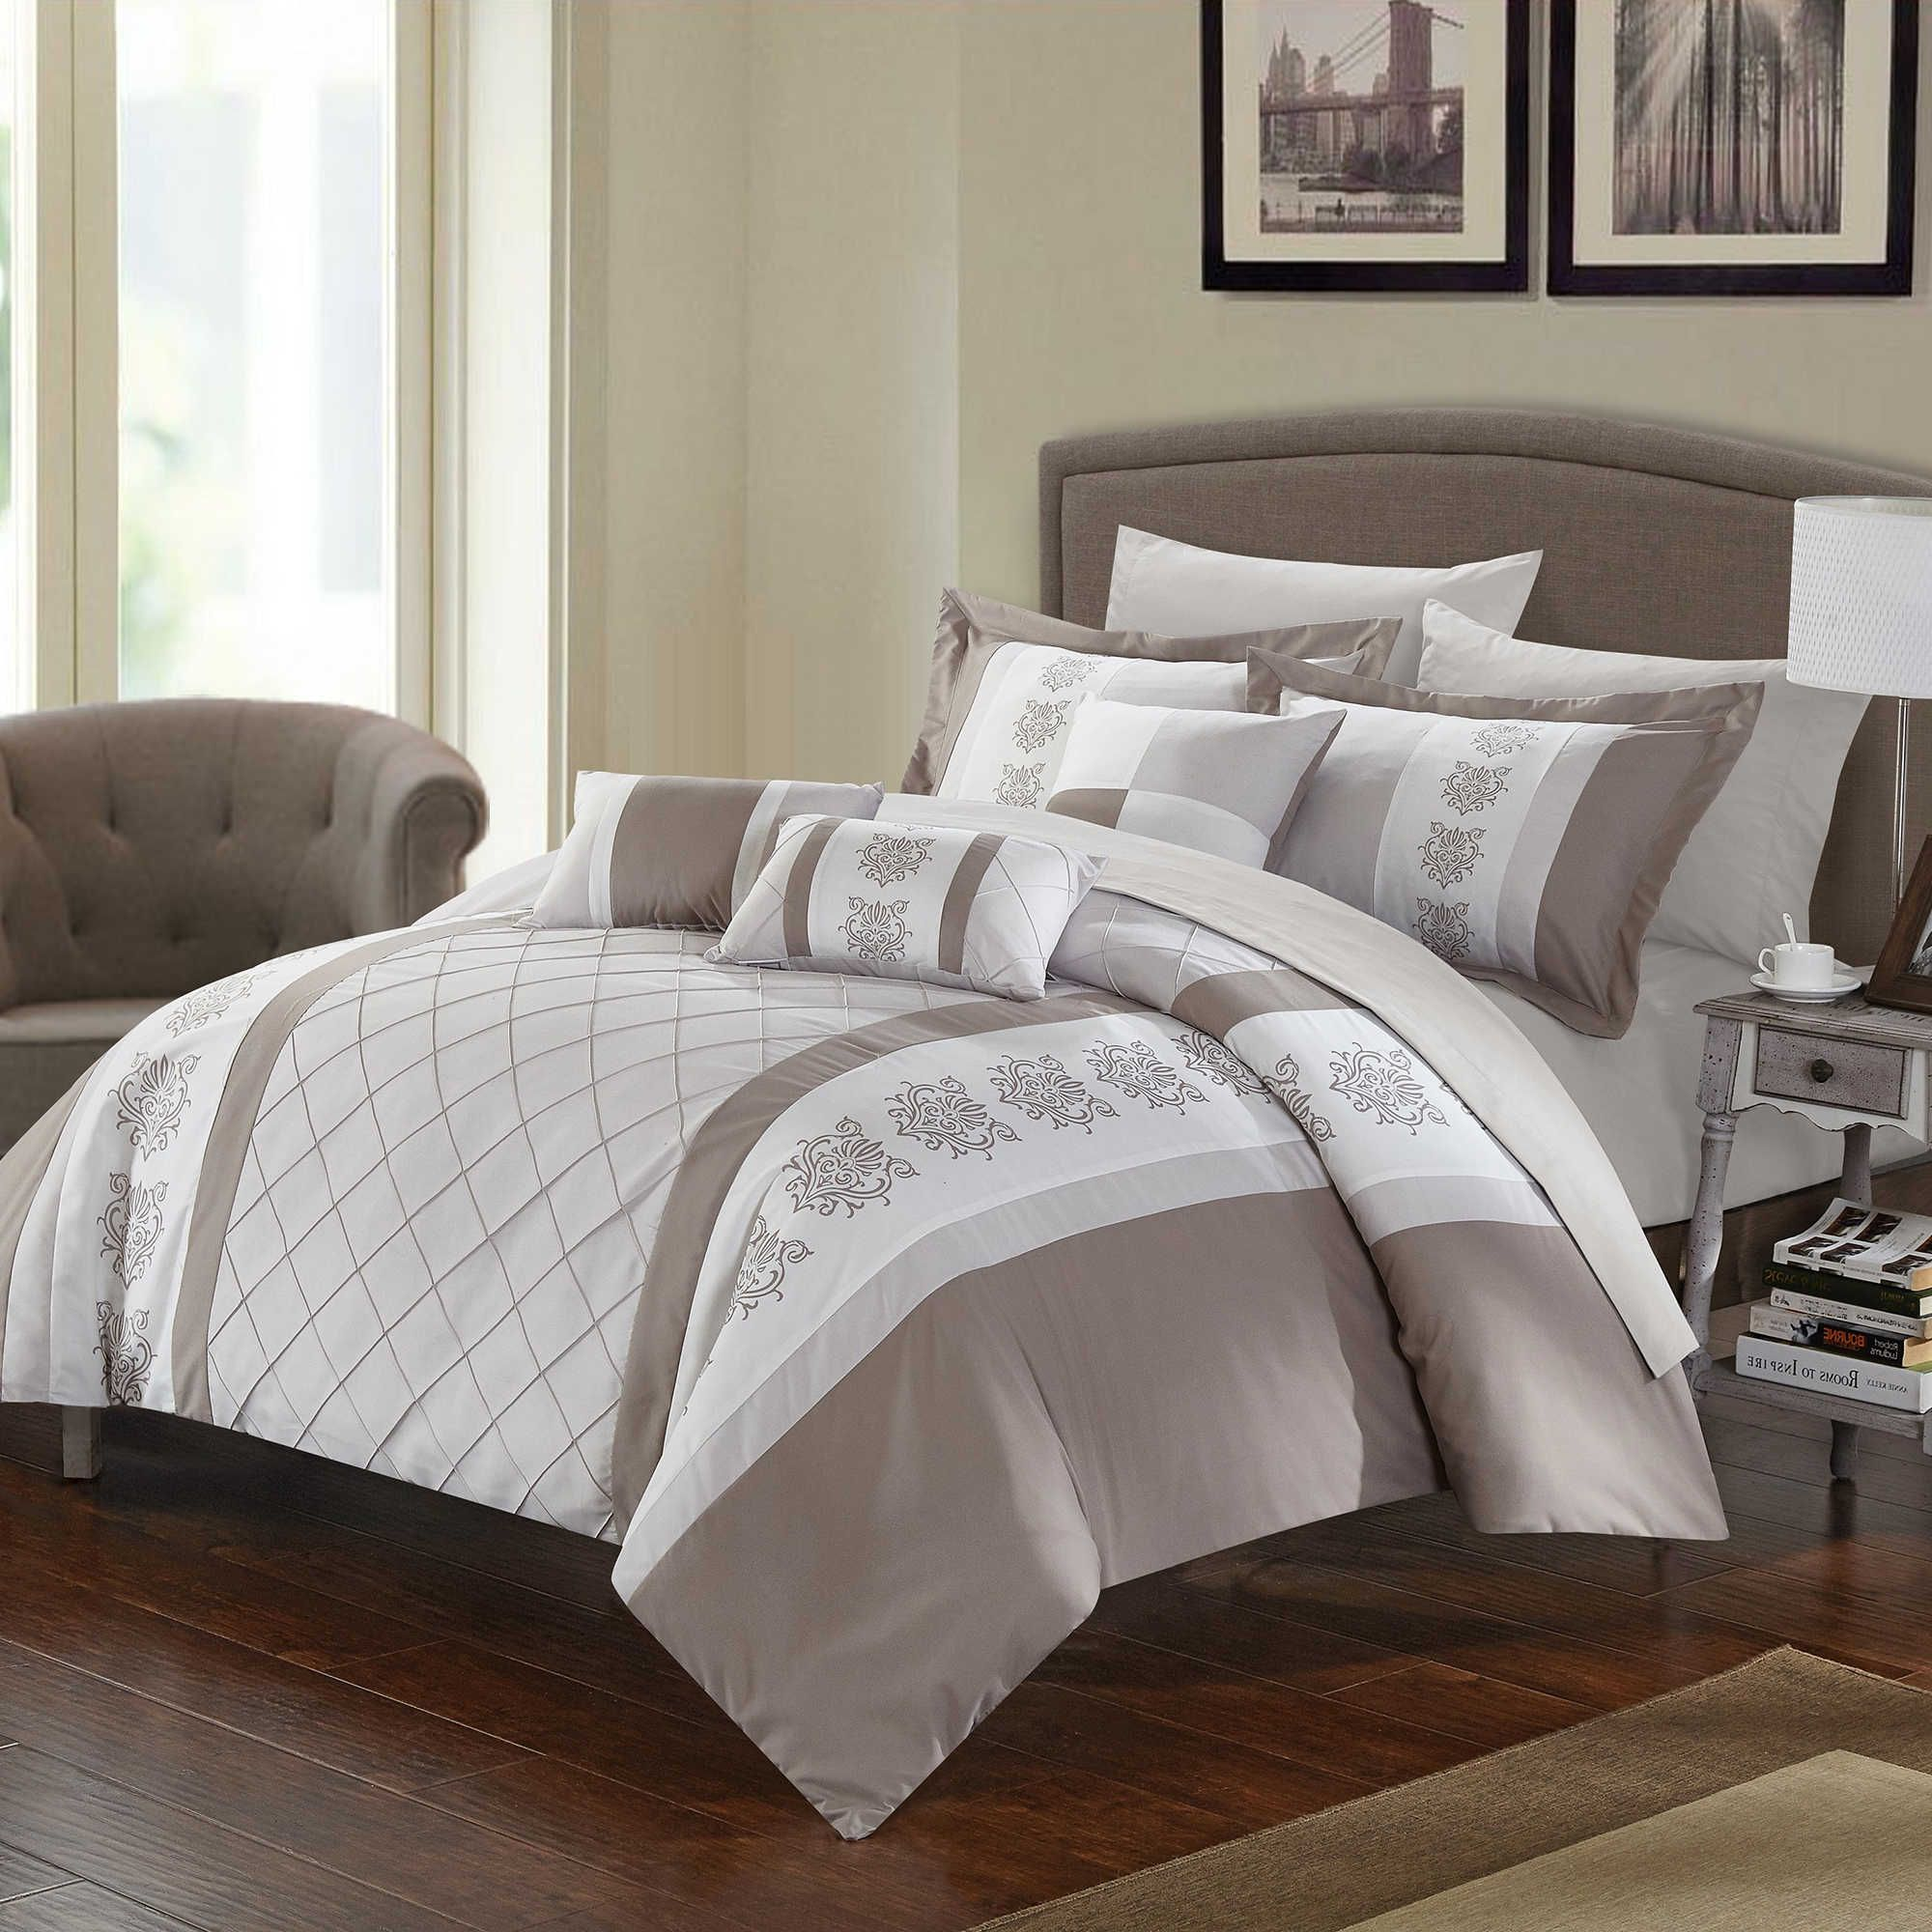 Chic Home Adam Comforter Set Comforter sets, Modern